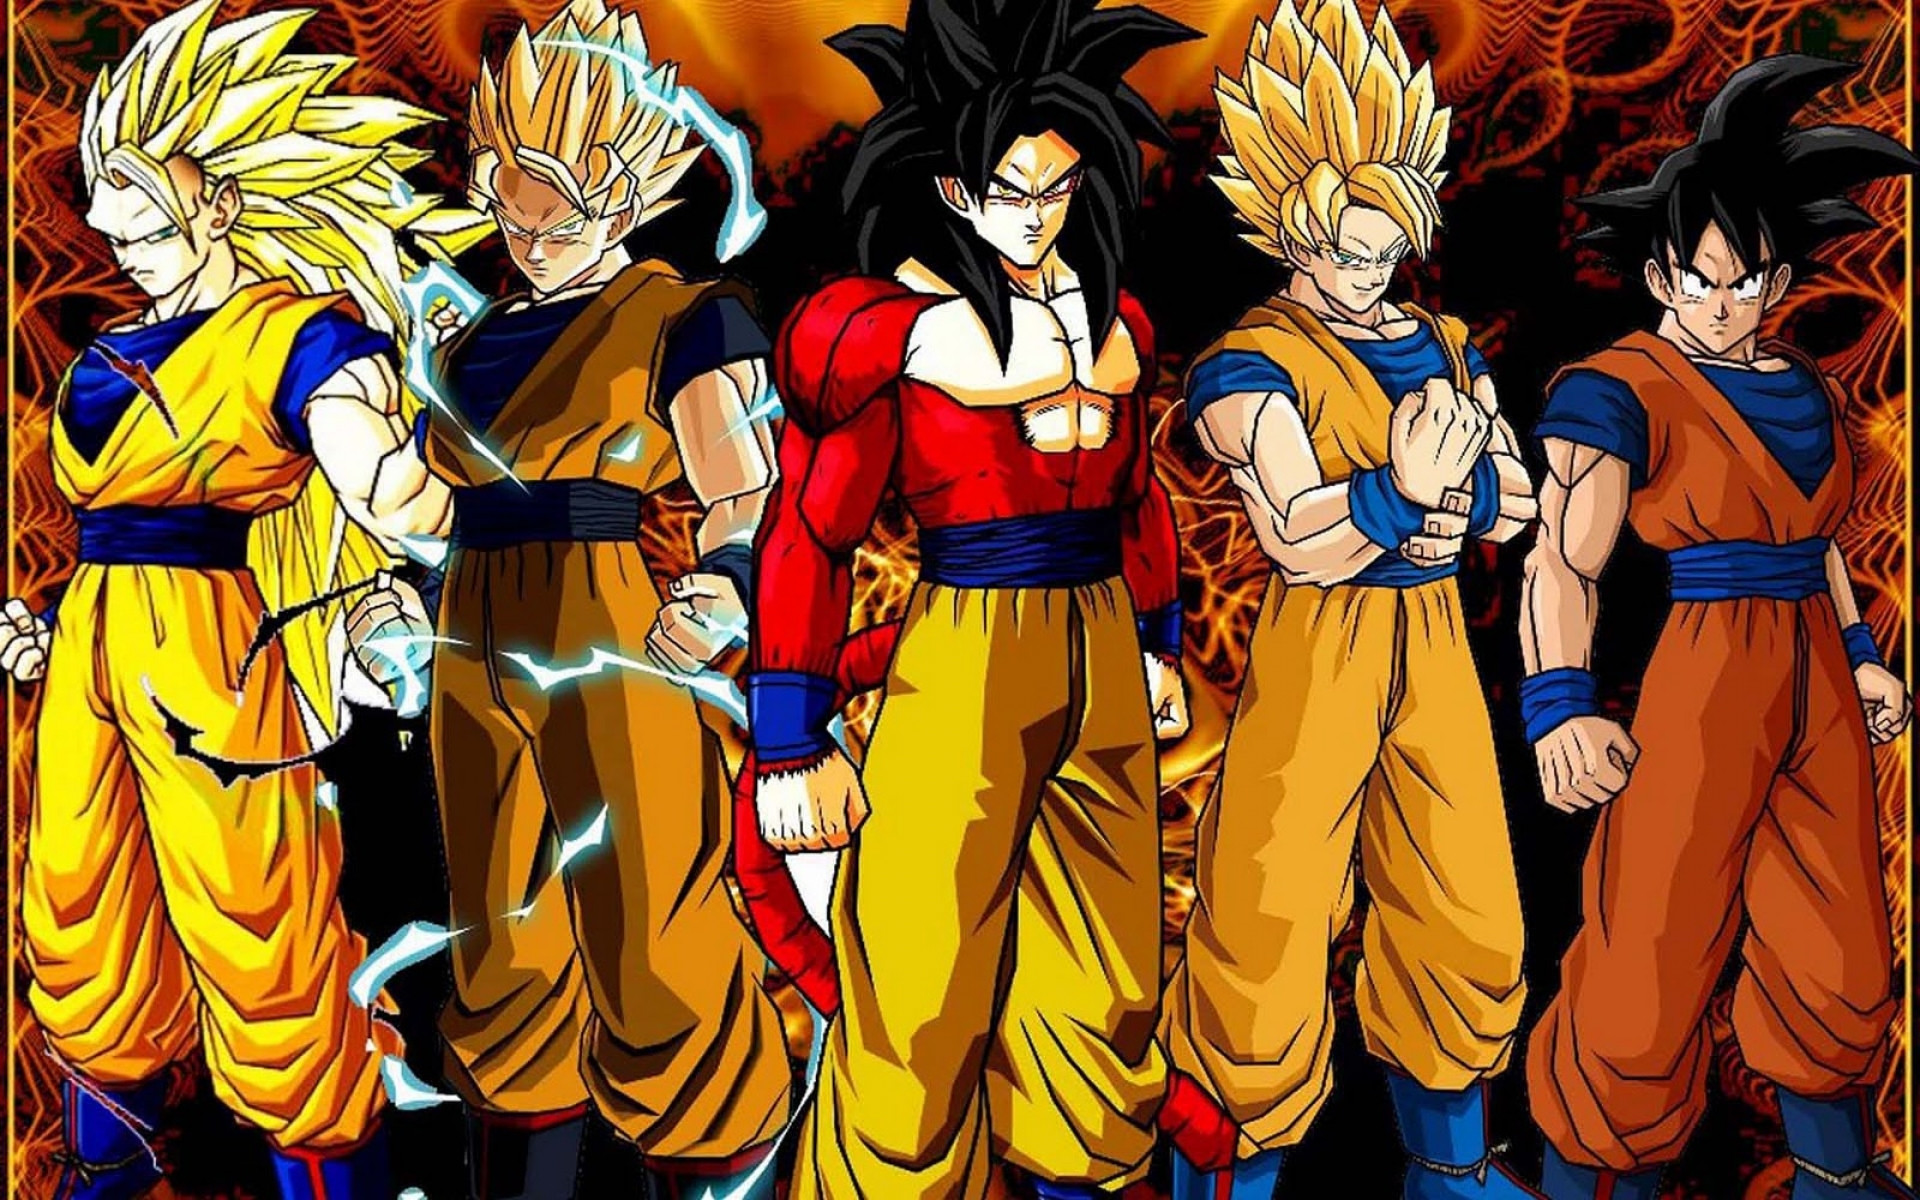 Dragon Ball Gt Wallpapers Anime Hq Dragon Ball Gt Pictures 4k